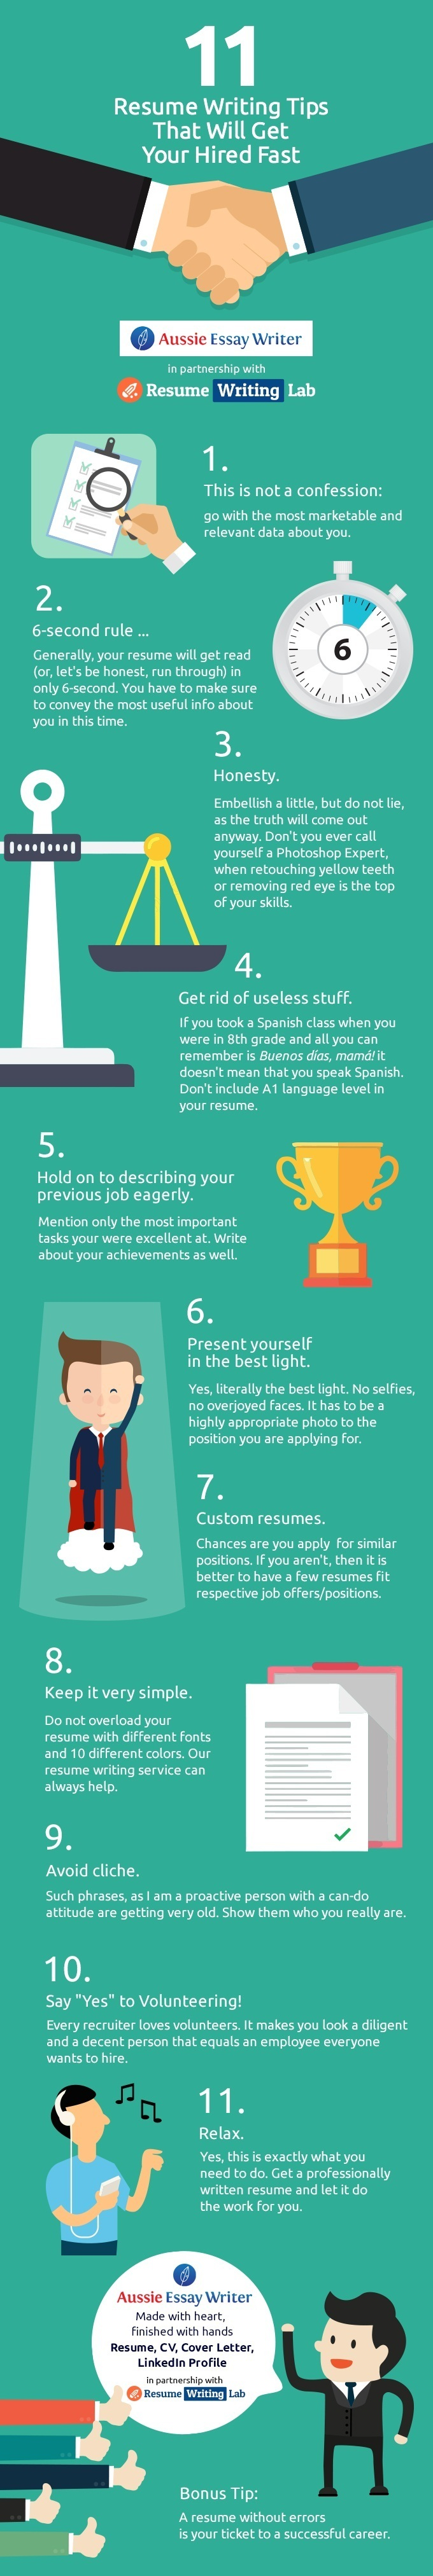 11 Resume Writing Tips That Will Get You Hired Fast Infographic  Resumes That Get You Hired